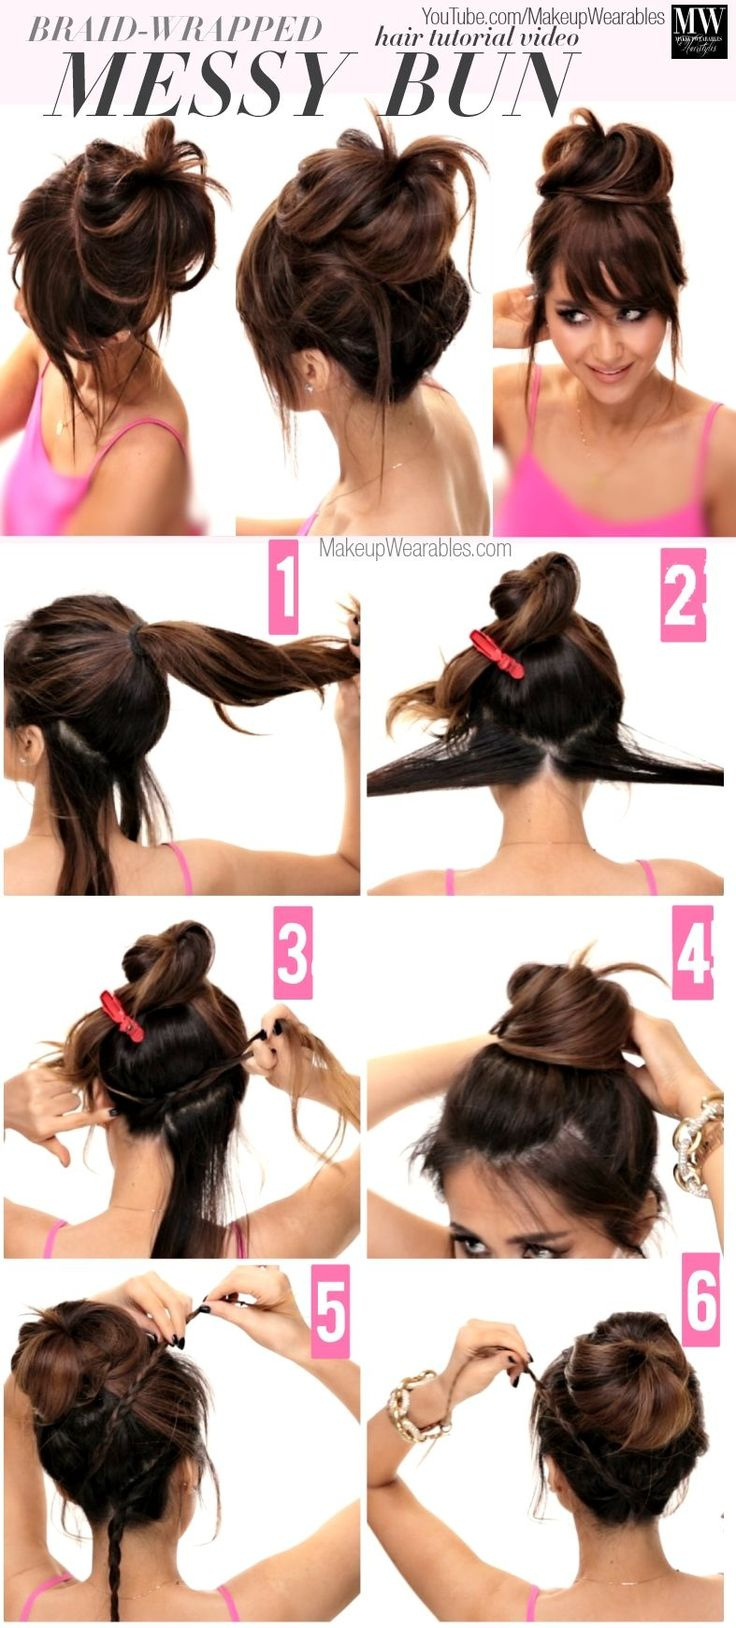 gow to create a big braided messy bun updo 4 Lazy Girls Easy Hairstyl #to #Hairs in 2020 | Bun ...